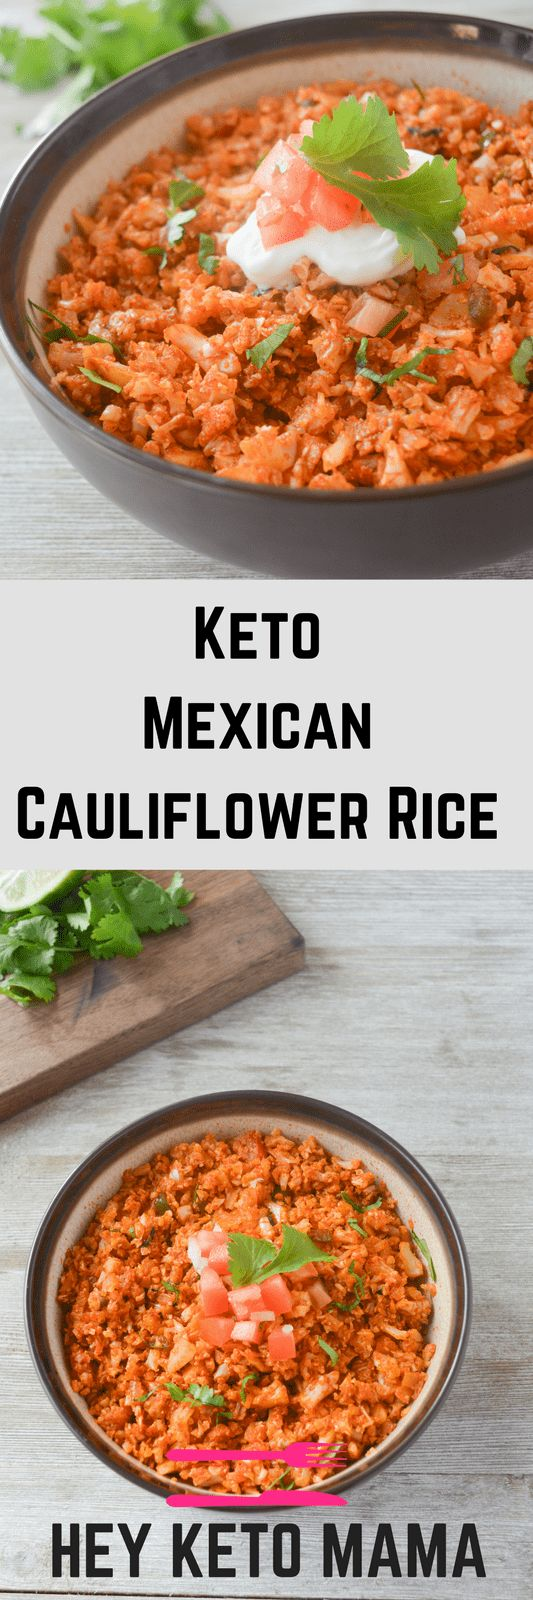 This Keto Mexican Cauliflower Rice is a savory side dish to complement any low carb Mexican dish. Especially if you've been struggling to make cauliflower rice a part of your diet, you NEED to try this recipe! | heyketomama.com via @heyketomama